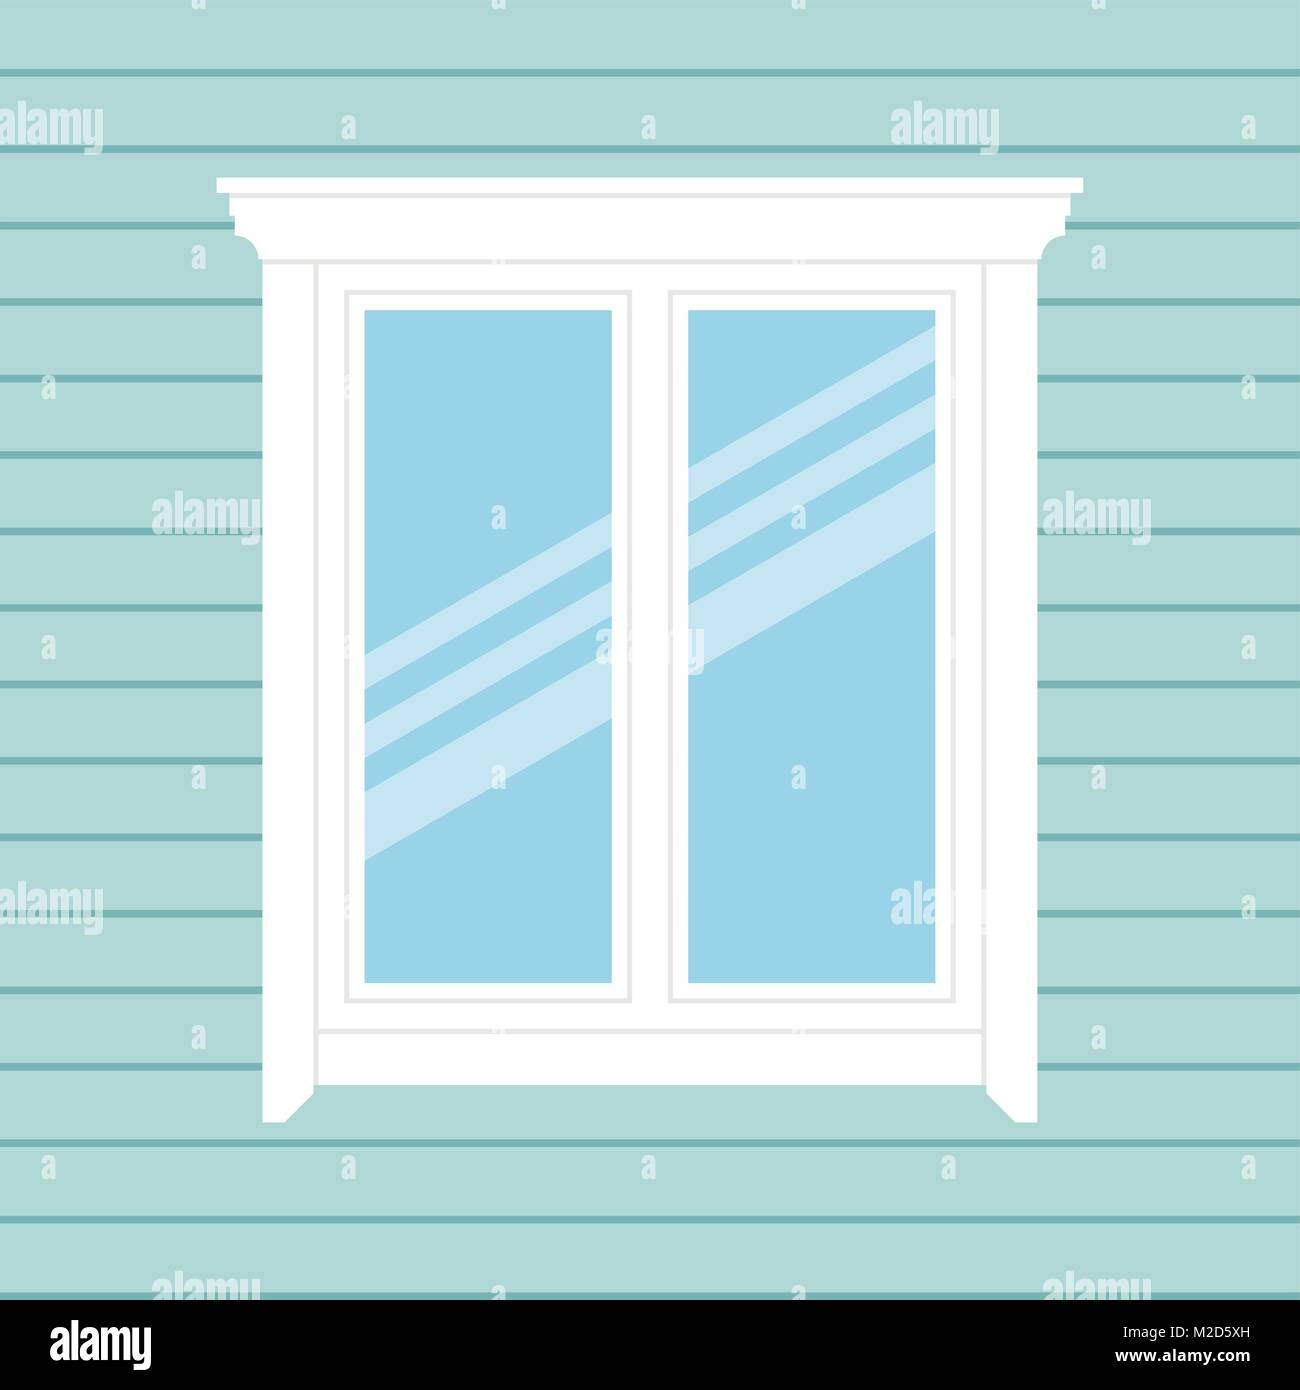 Background with window. - Stock Vector